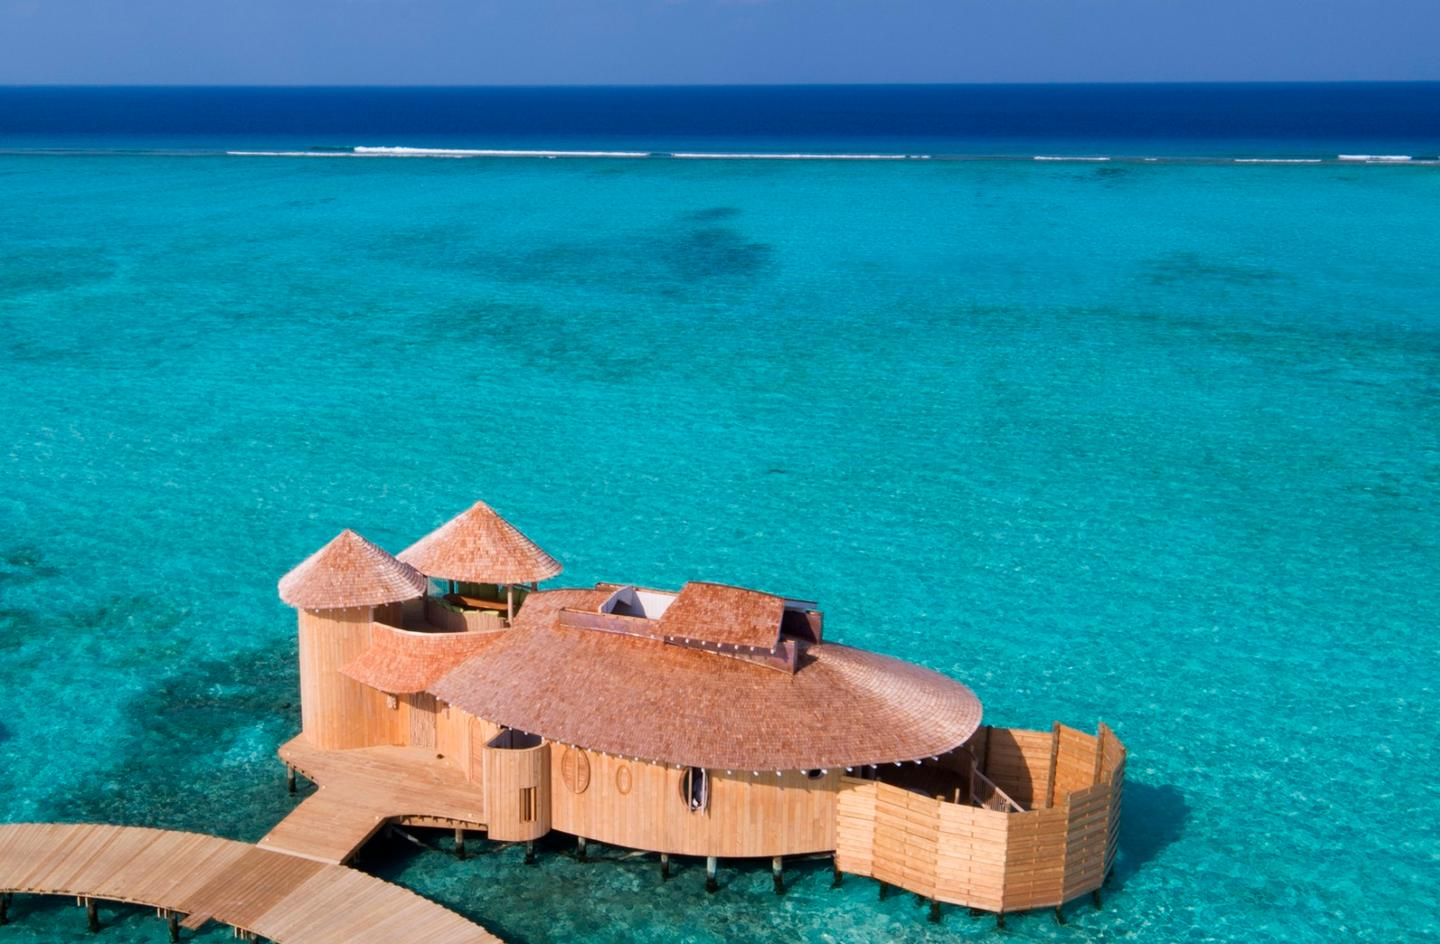 The idea for theretractable roofs came about when it emerged that guests at another Soneva resort were taking pillows out of their villas to sleep under the stars